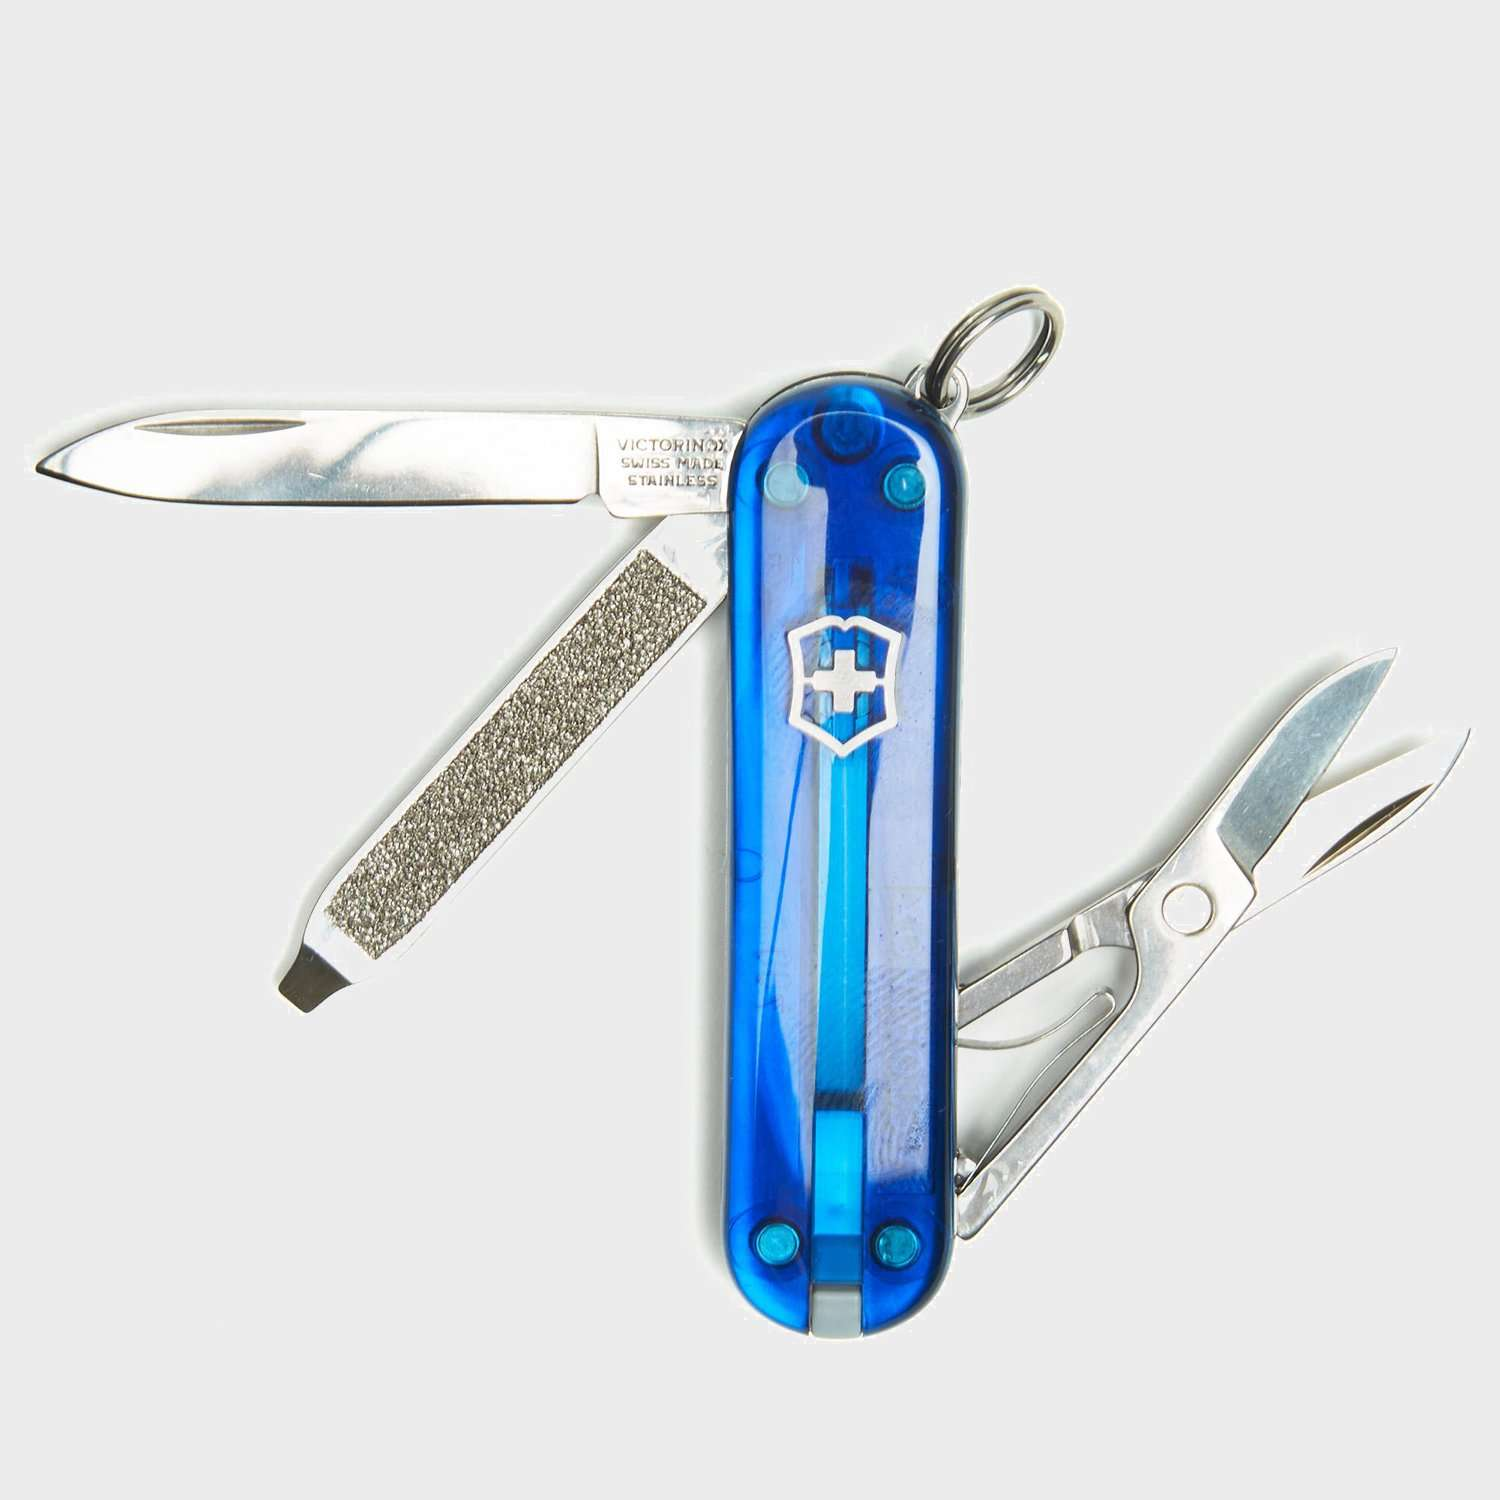 VICTORINOX Classic SD Jelly Swiss Army Knife